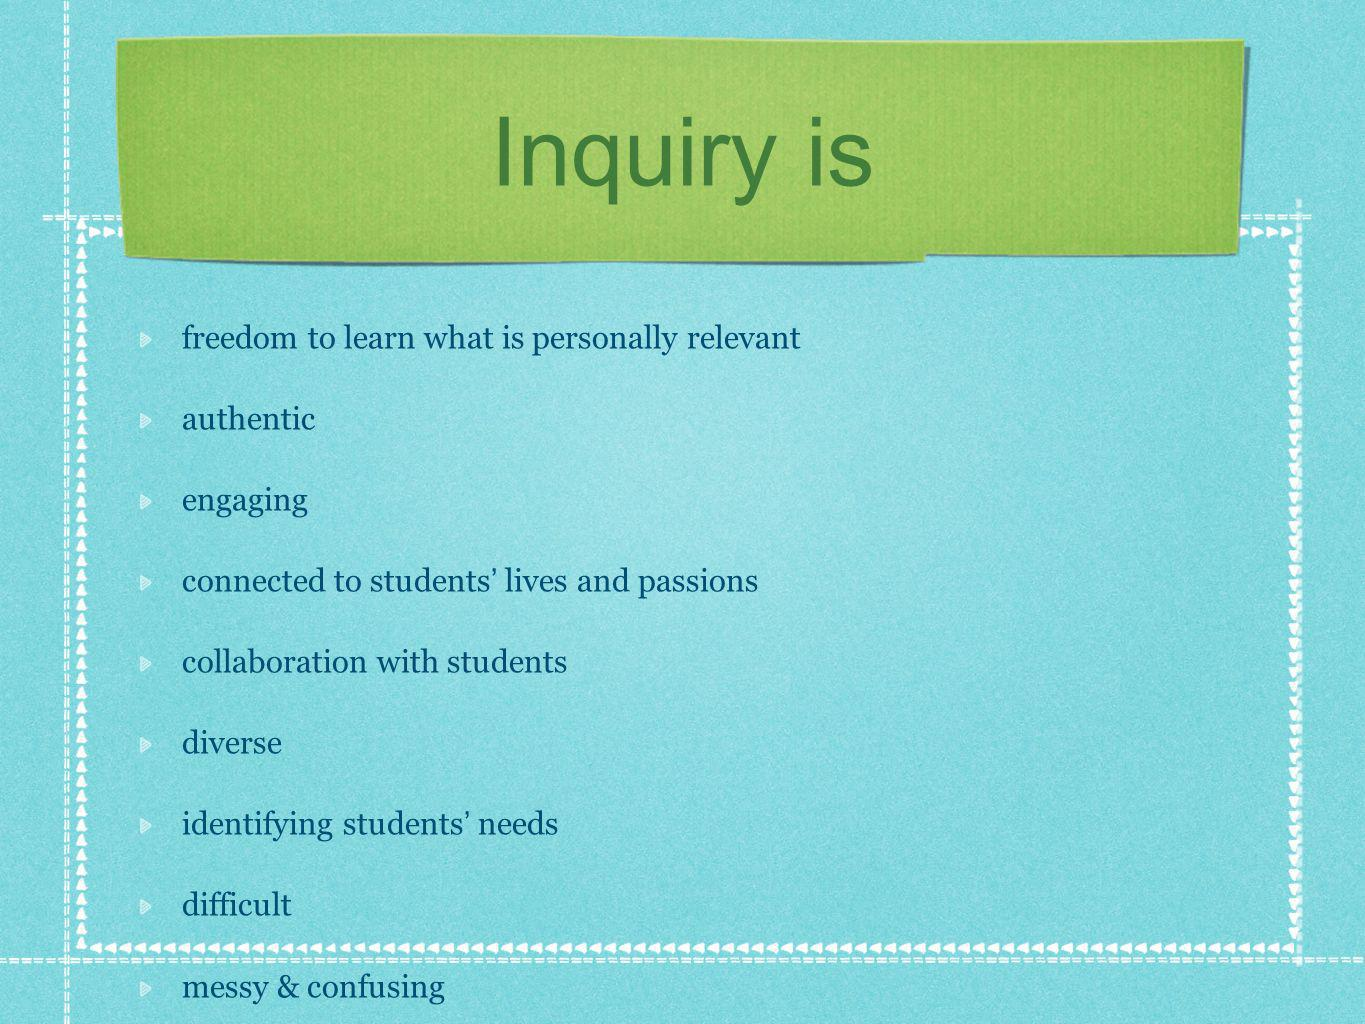 Inquiry is freedom to learn what is personally relevant authentic engaging connected to students lives and passions collaboration with students diverse identifying students needs difficult messy & confusing slow learning together finding courage taking risks fearless surrender time consuming